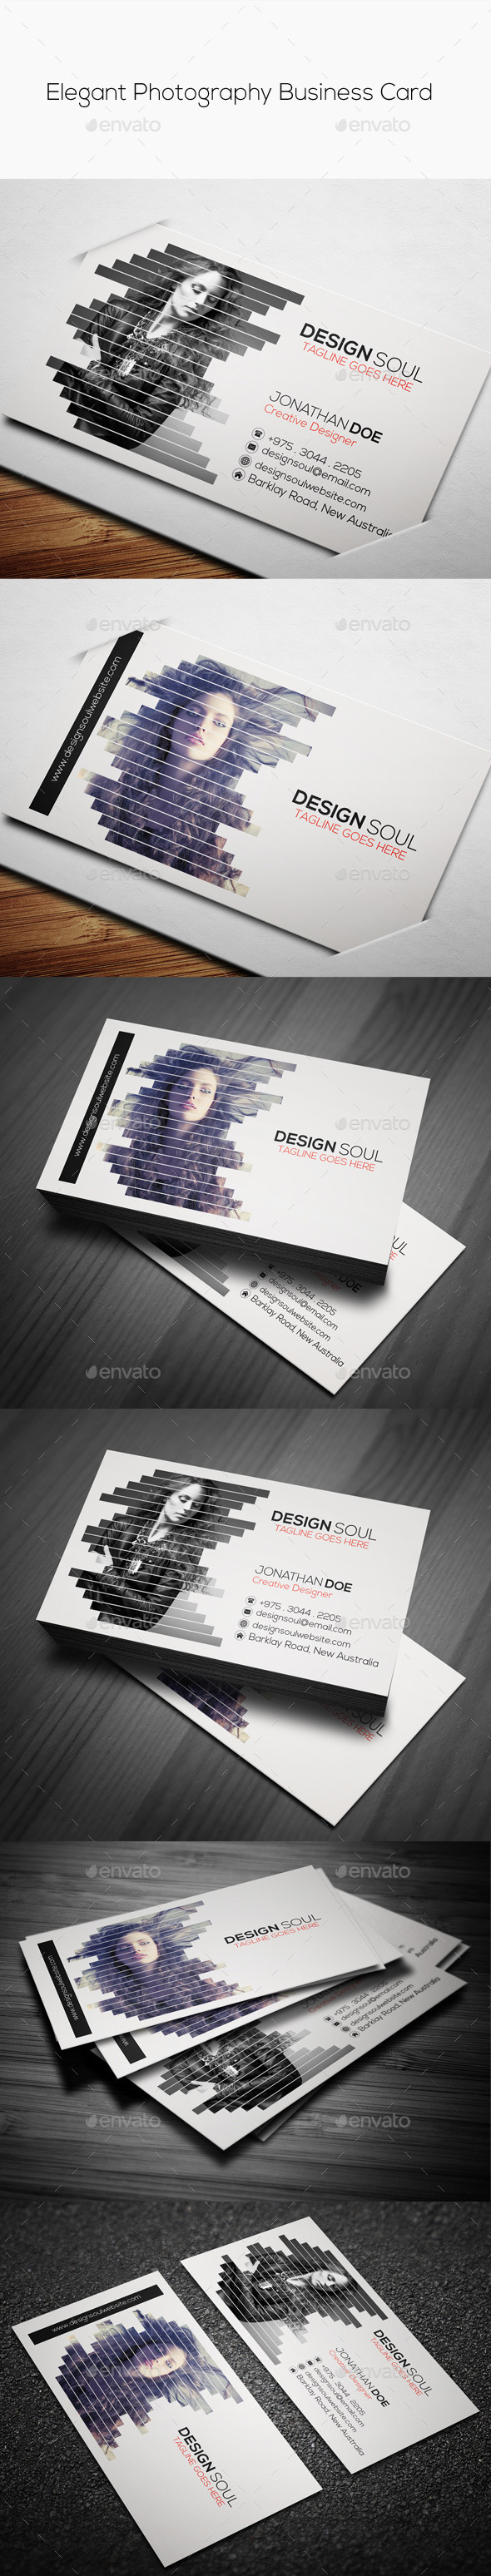 GraphicRiver Elegant Photography Business Card 9448294